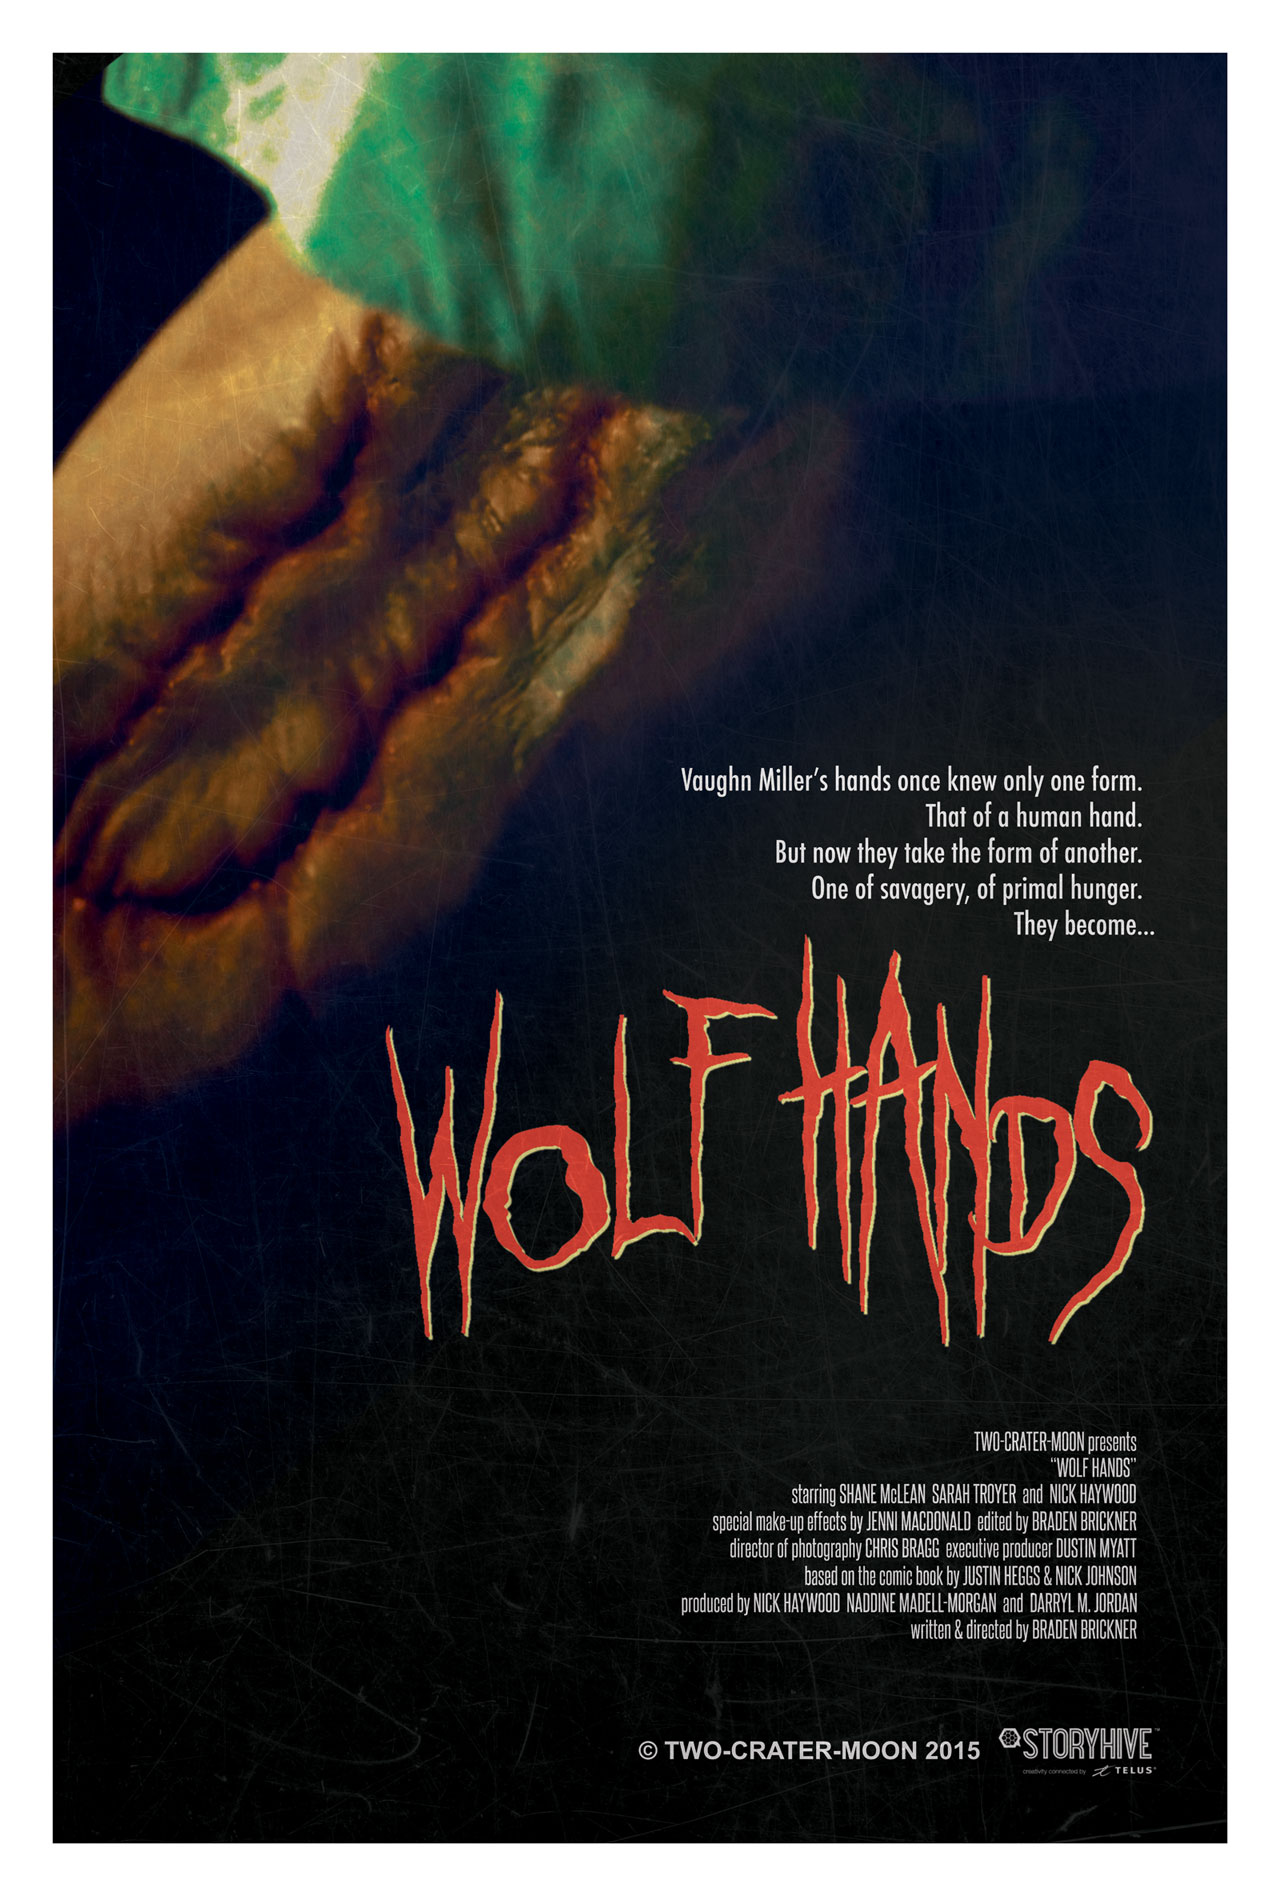 wolfhandsposter